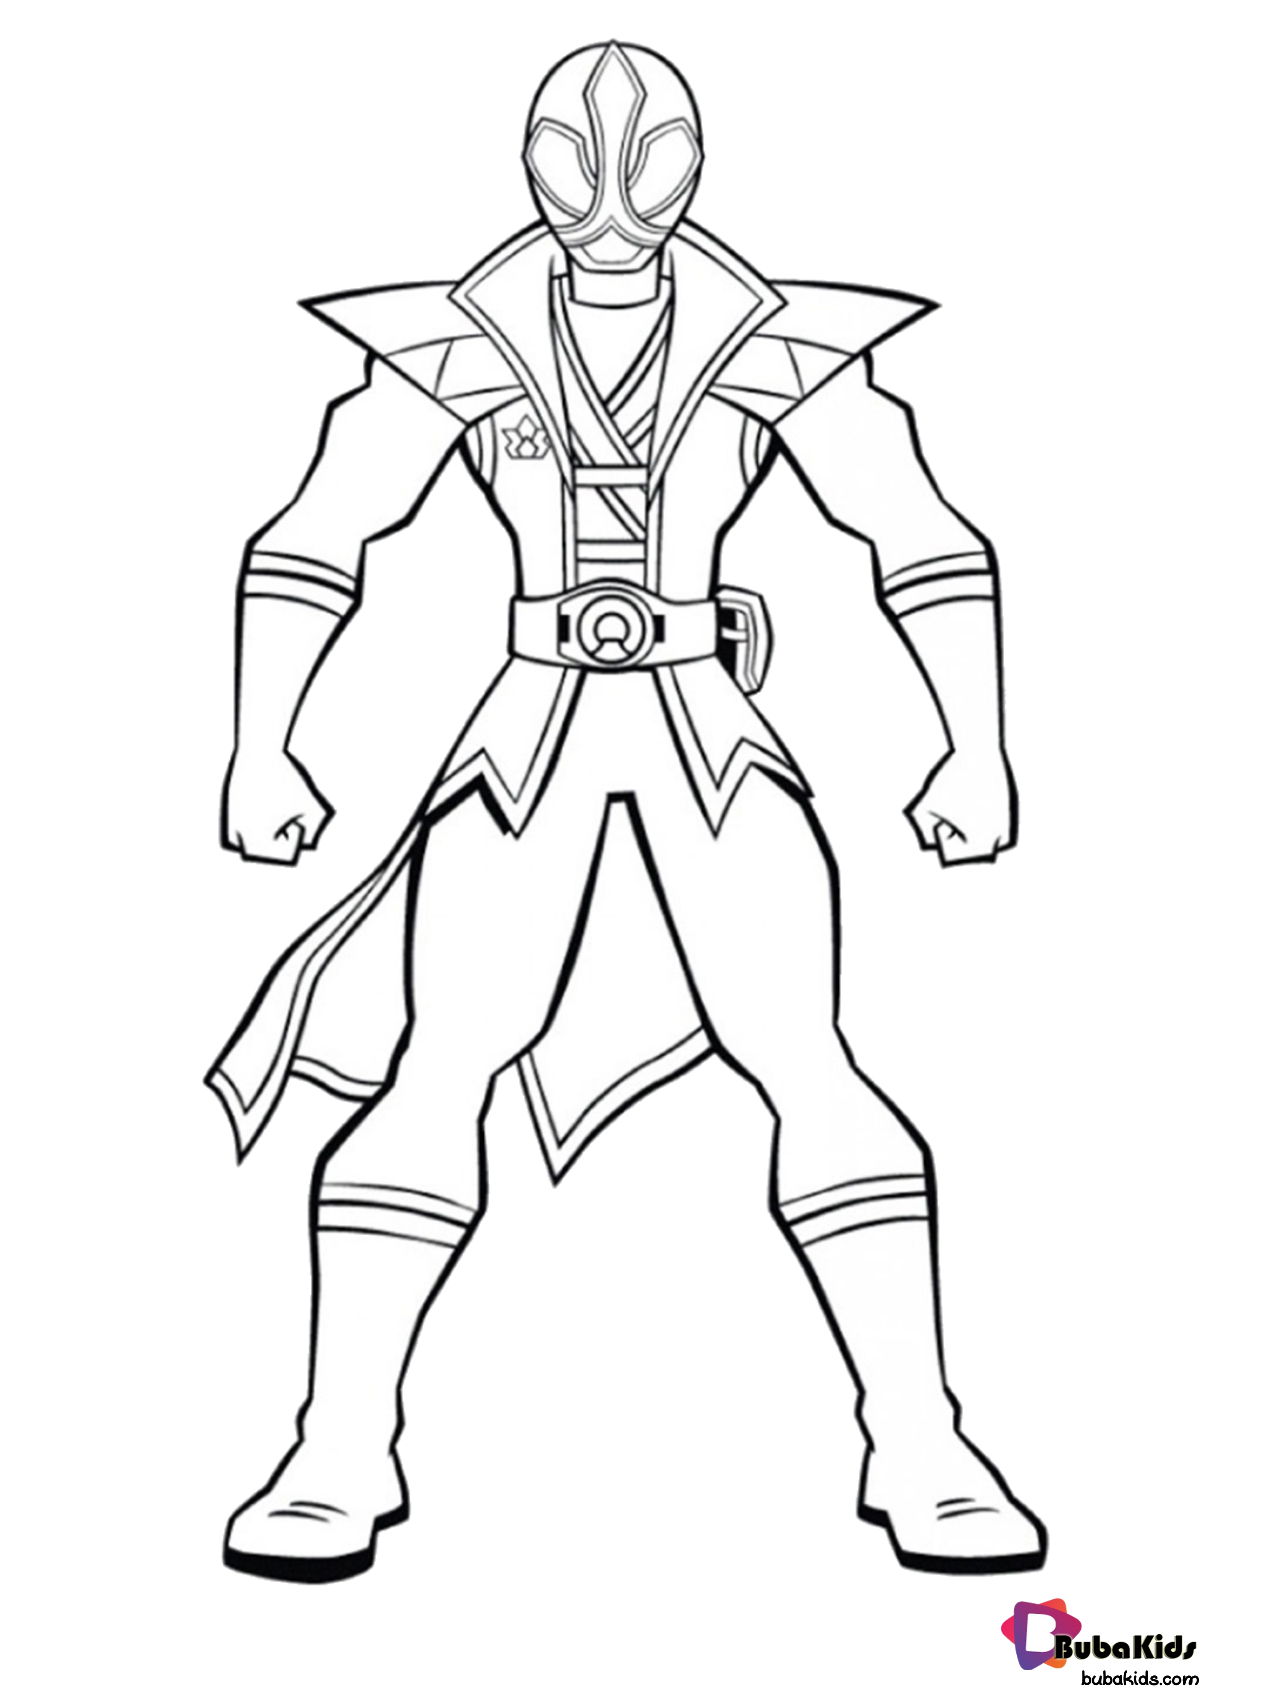 Free Download Power Ranger Megaforce Coloring Page Collection Of Cartoon Color Power Rangers Coloring Pages Power Rangers Samurai Power Rangers Super Samurai